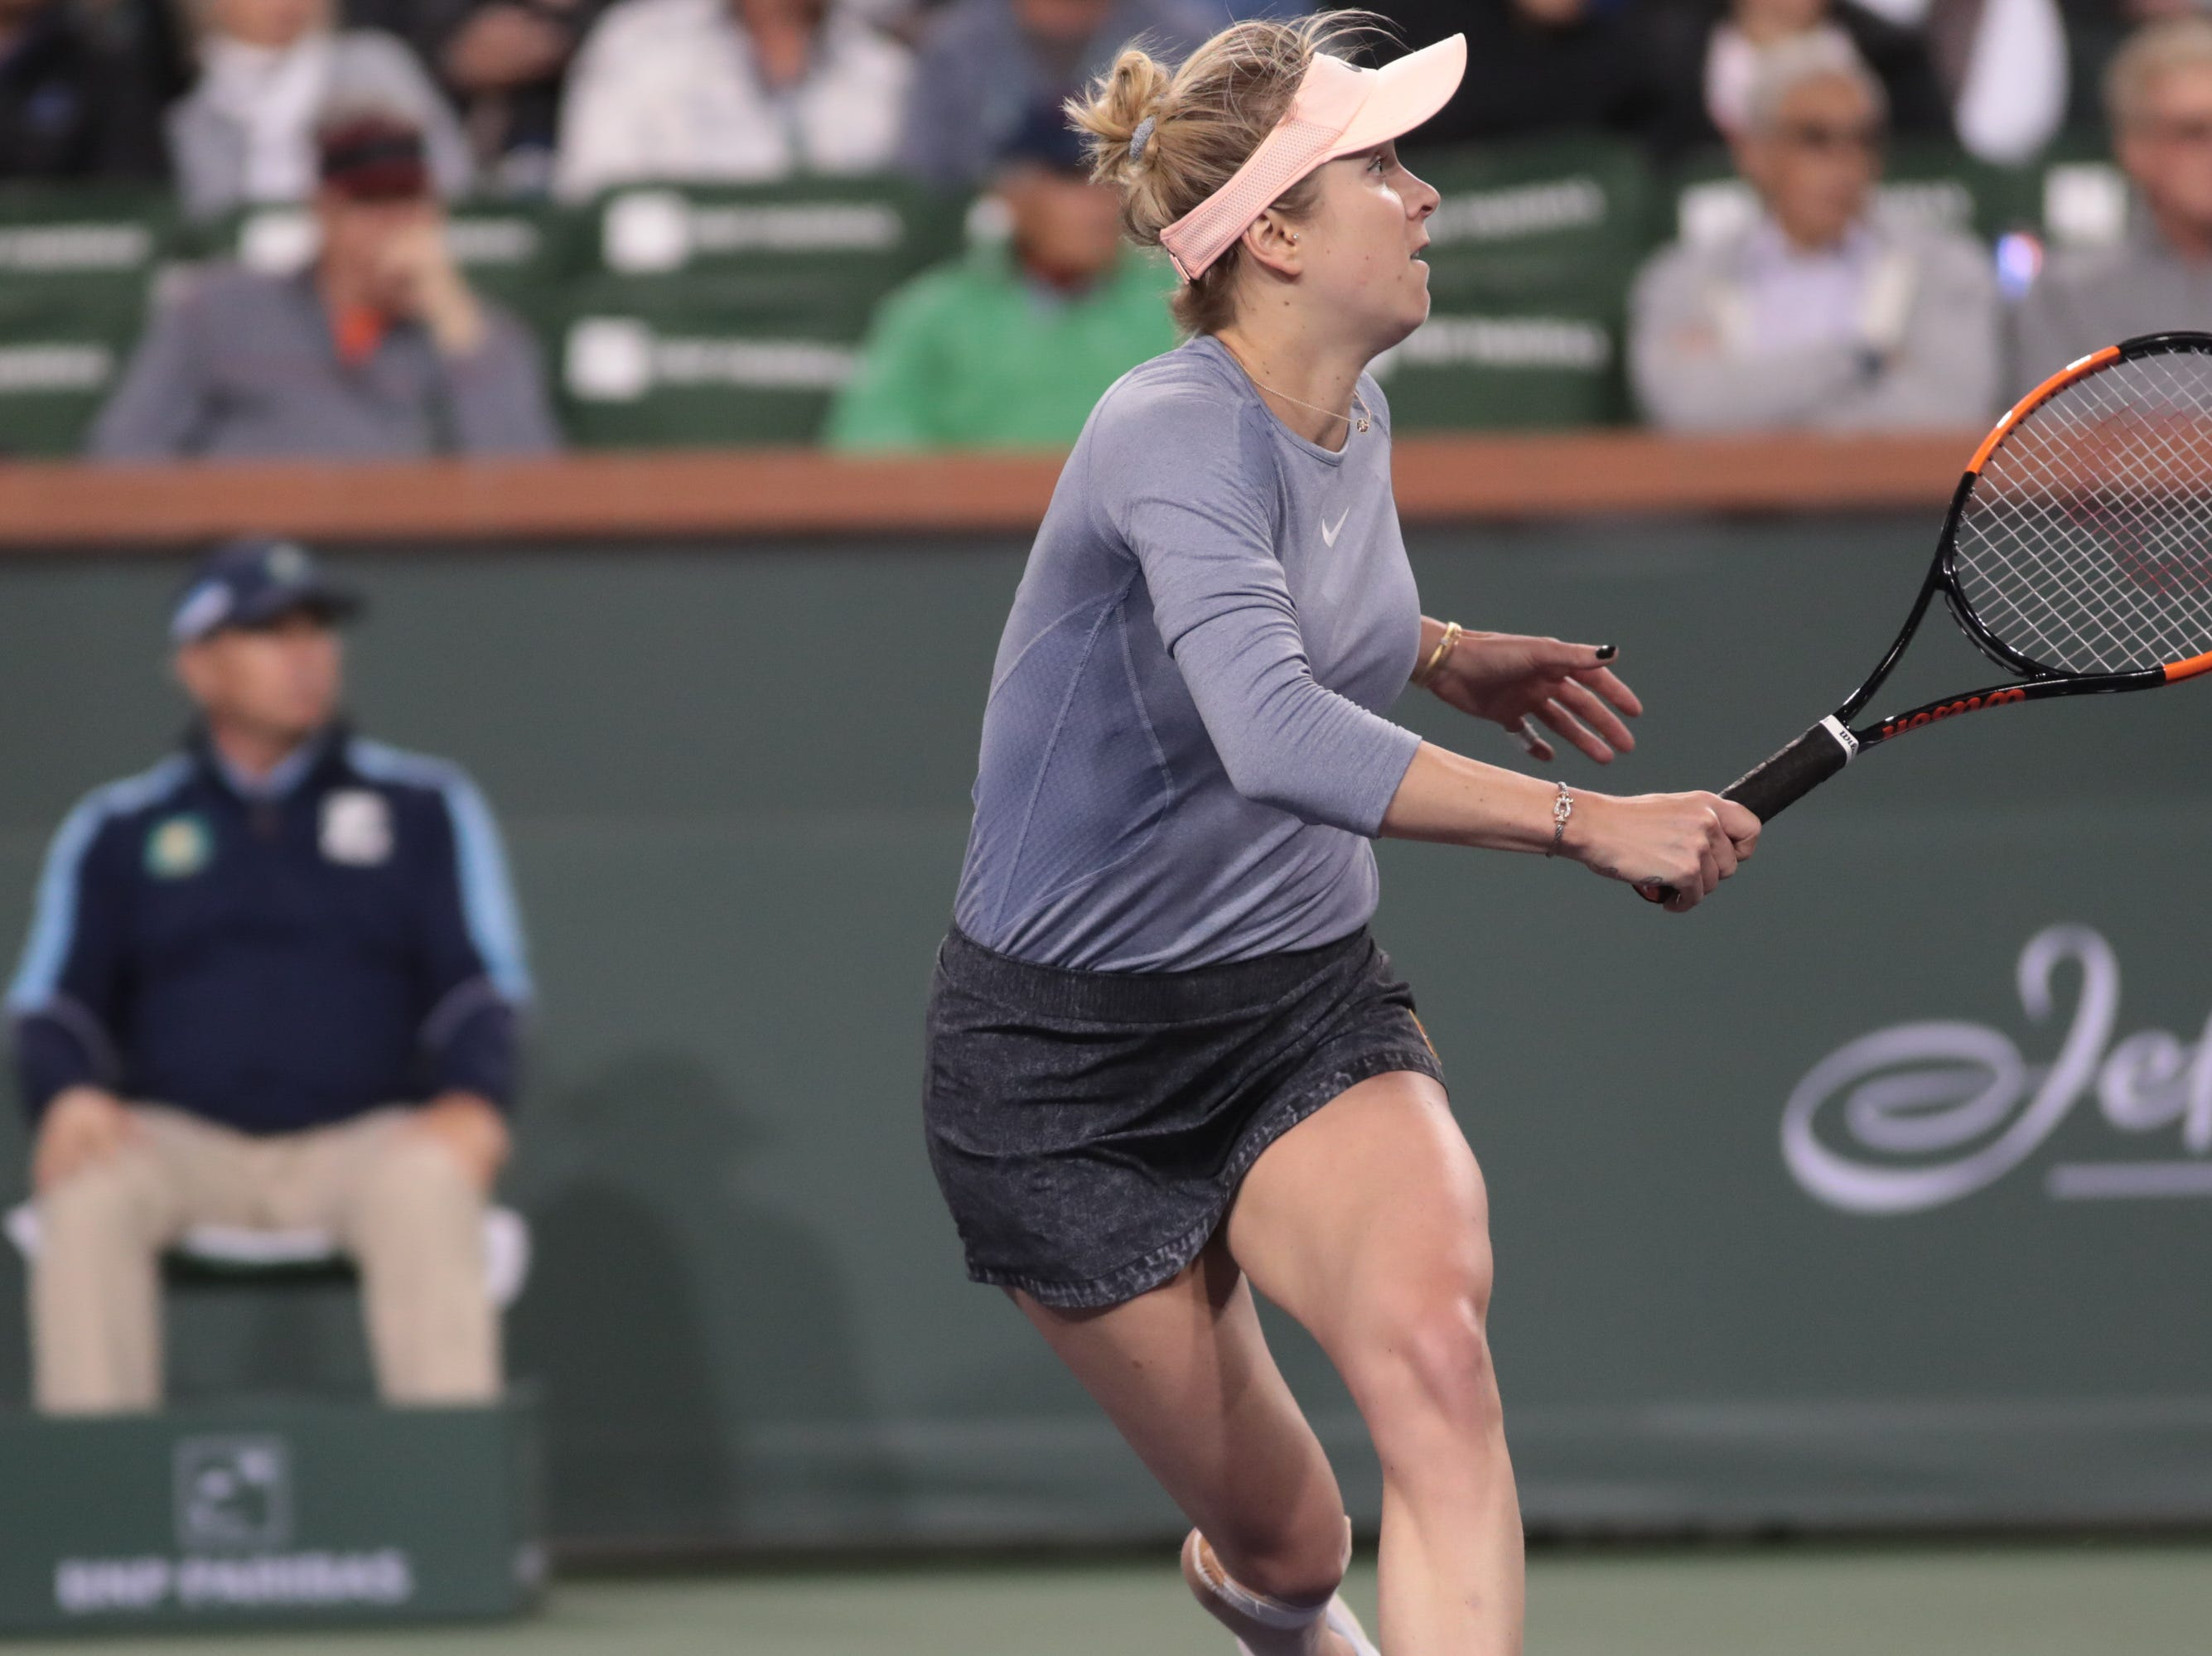 Elina Svitolina runs to a shot from Marketa Vondrousova in the third set of their match at the BNP Paribas Open in Indian Wells, Calif., March 13, 2019.